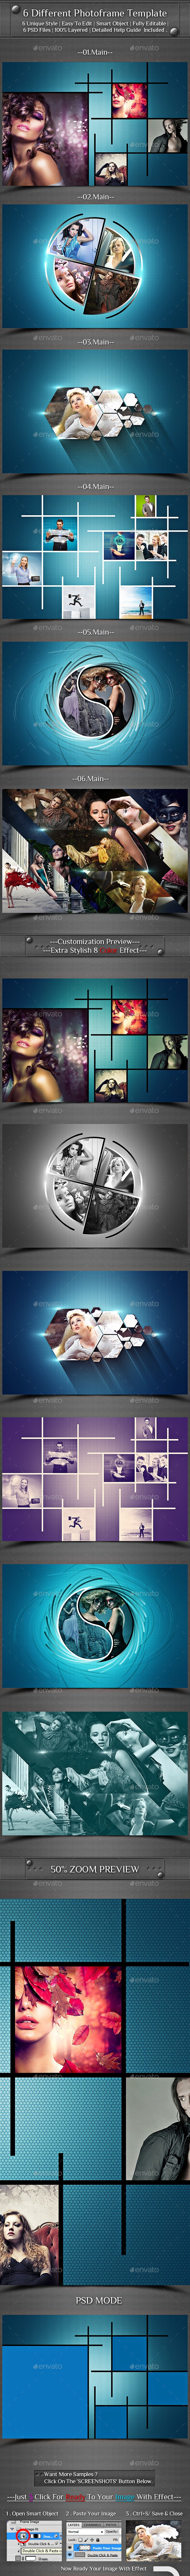 6 Different Photo Frame Template - Photo Templates Graphics